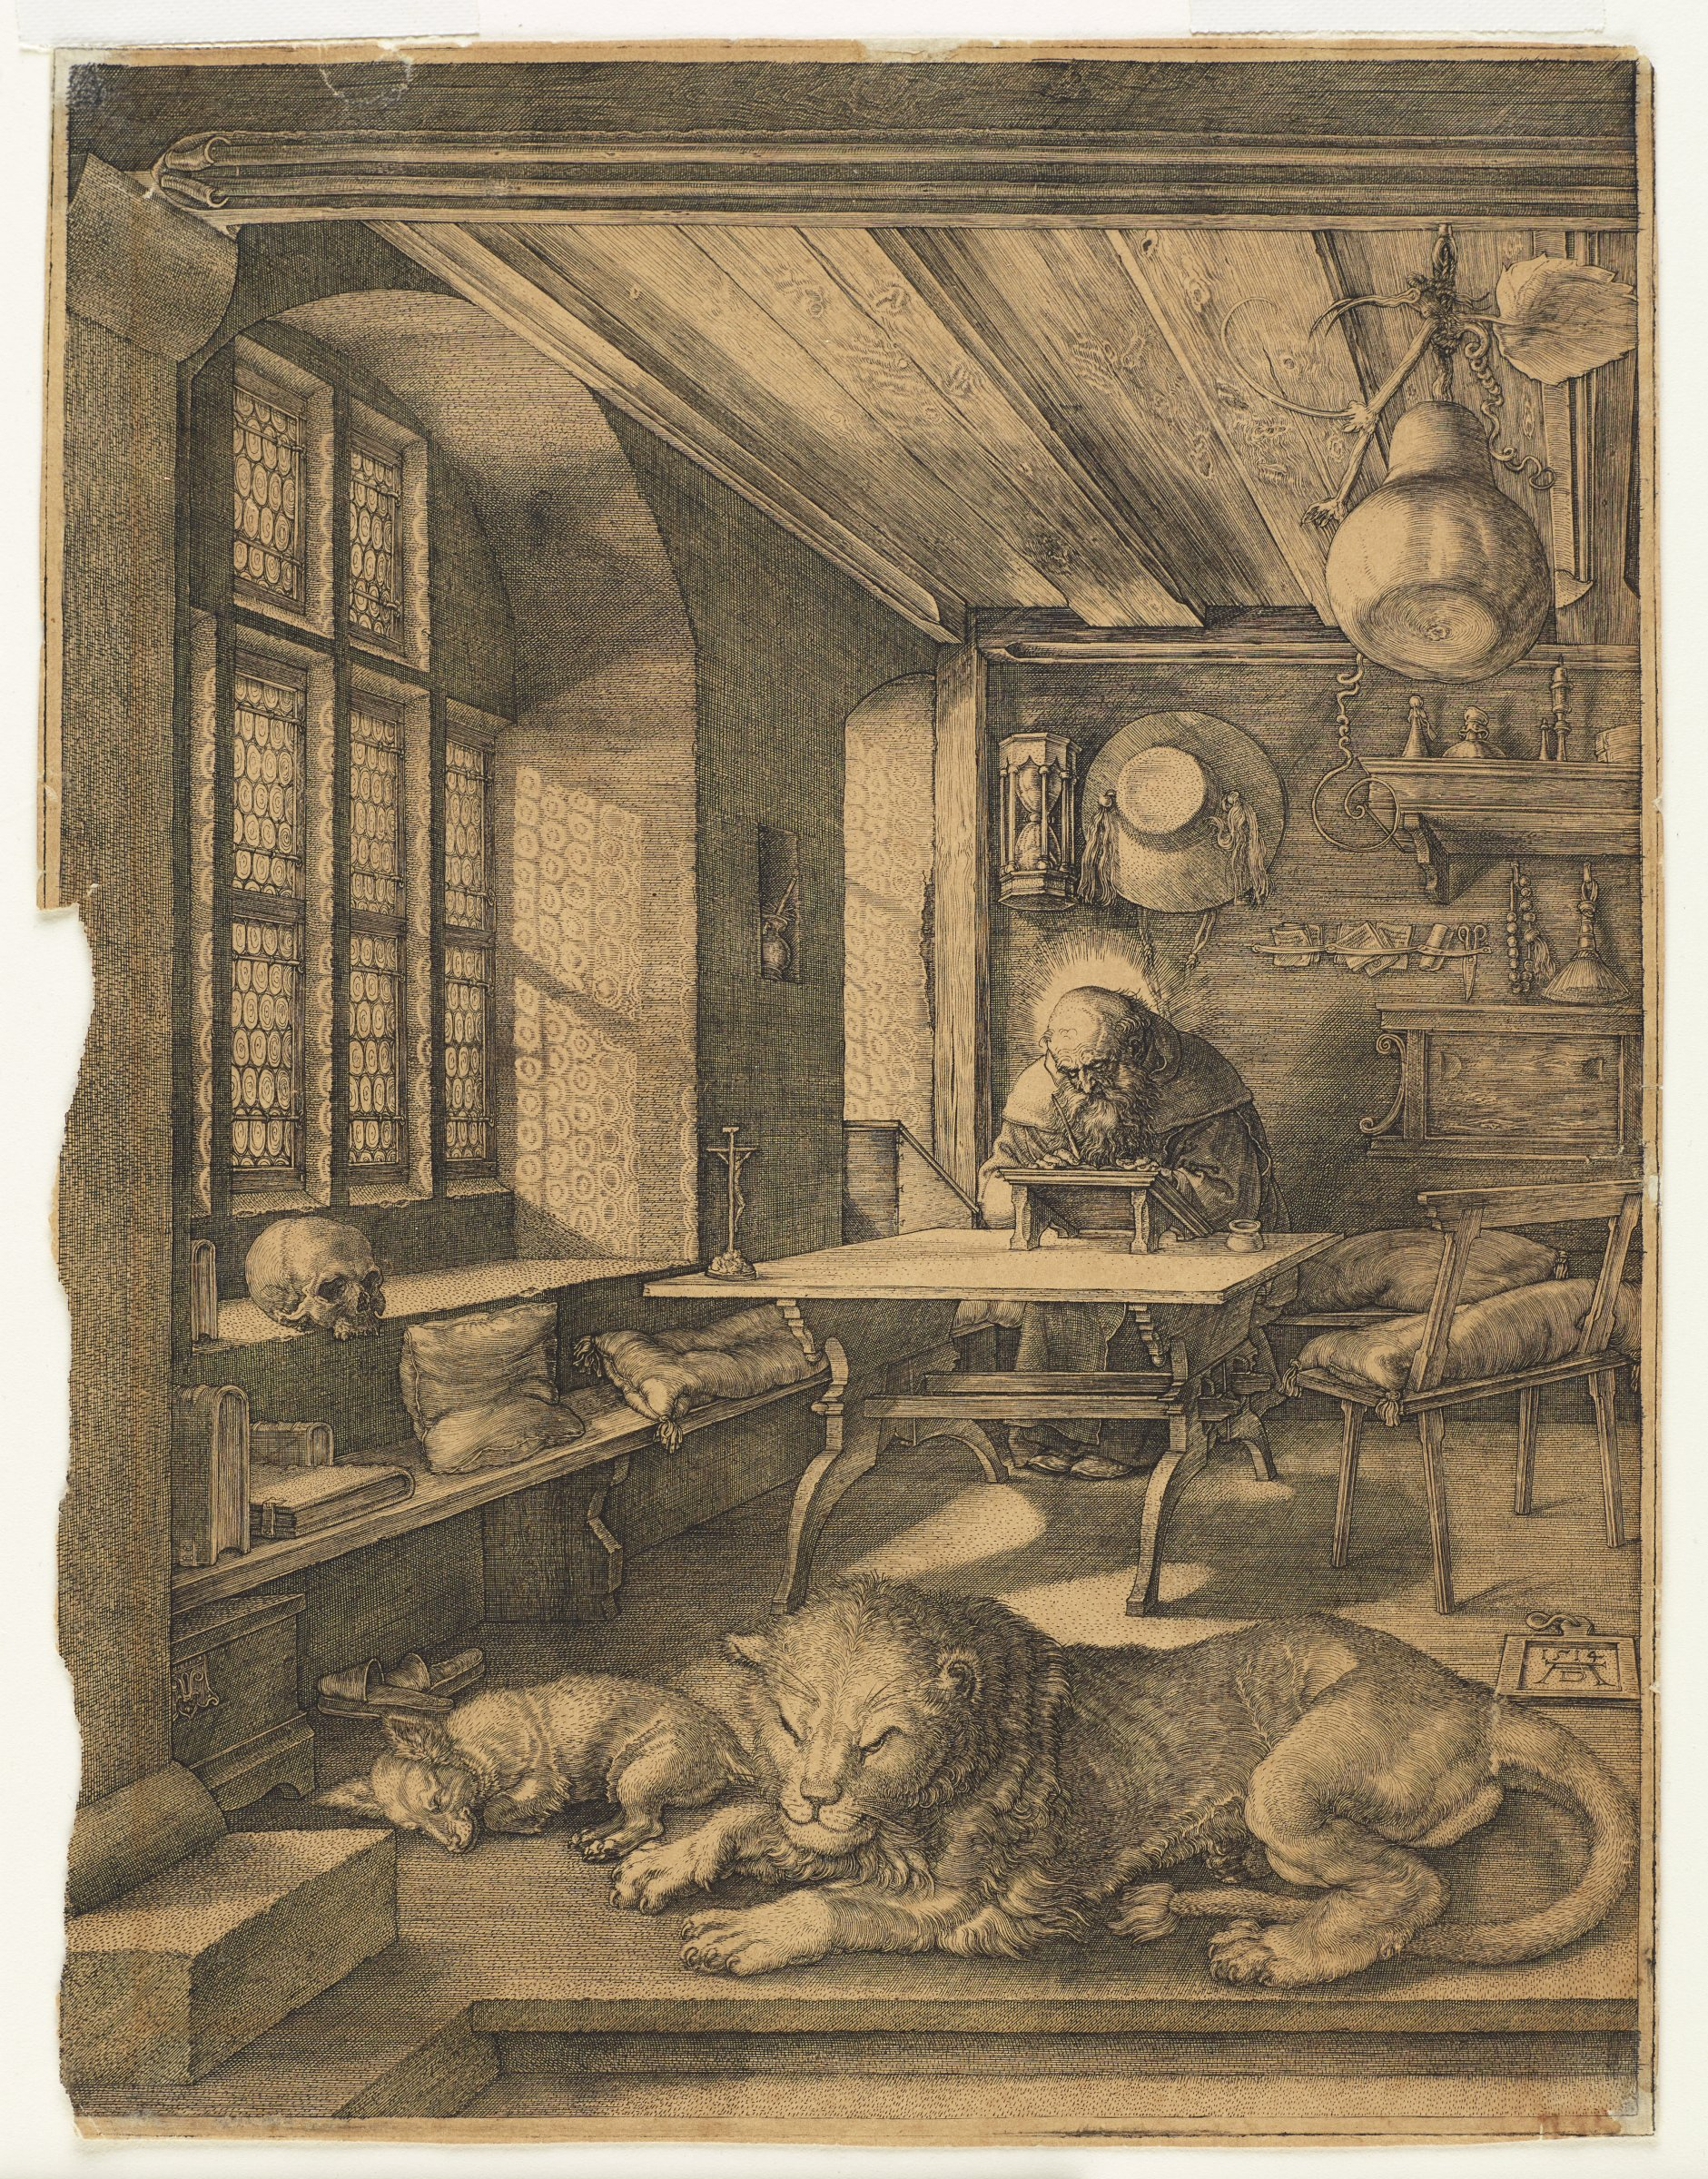 St. Jerome sits towards the back of a room at a desk.  A dog and a lion lay in the foreground.